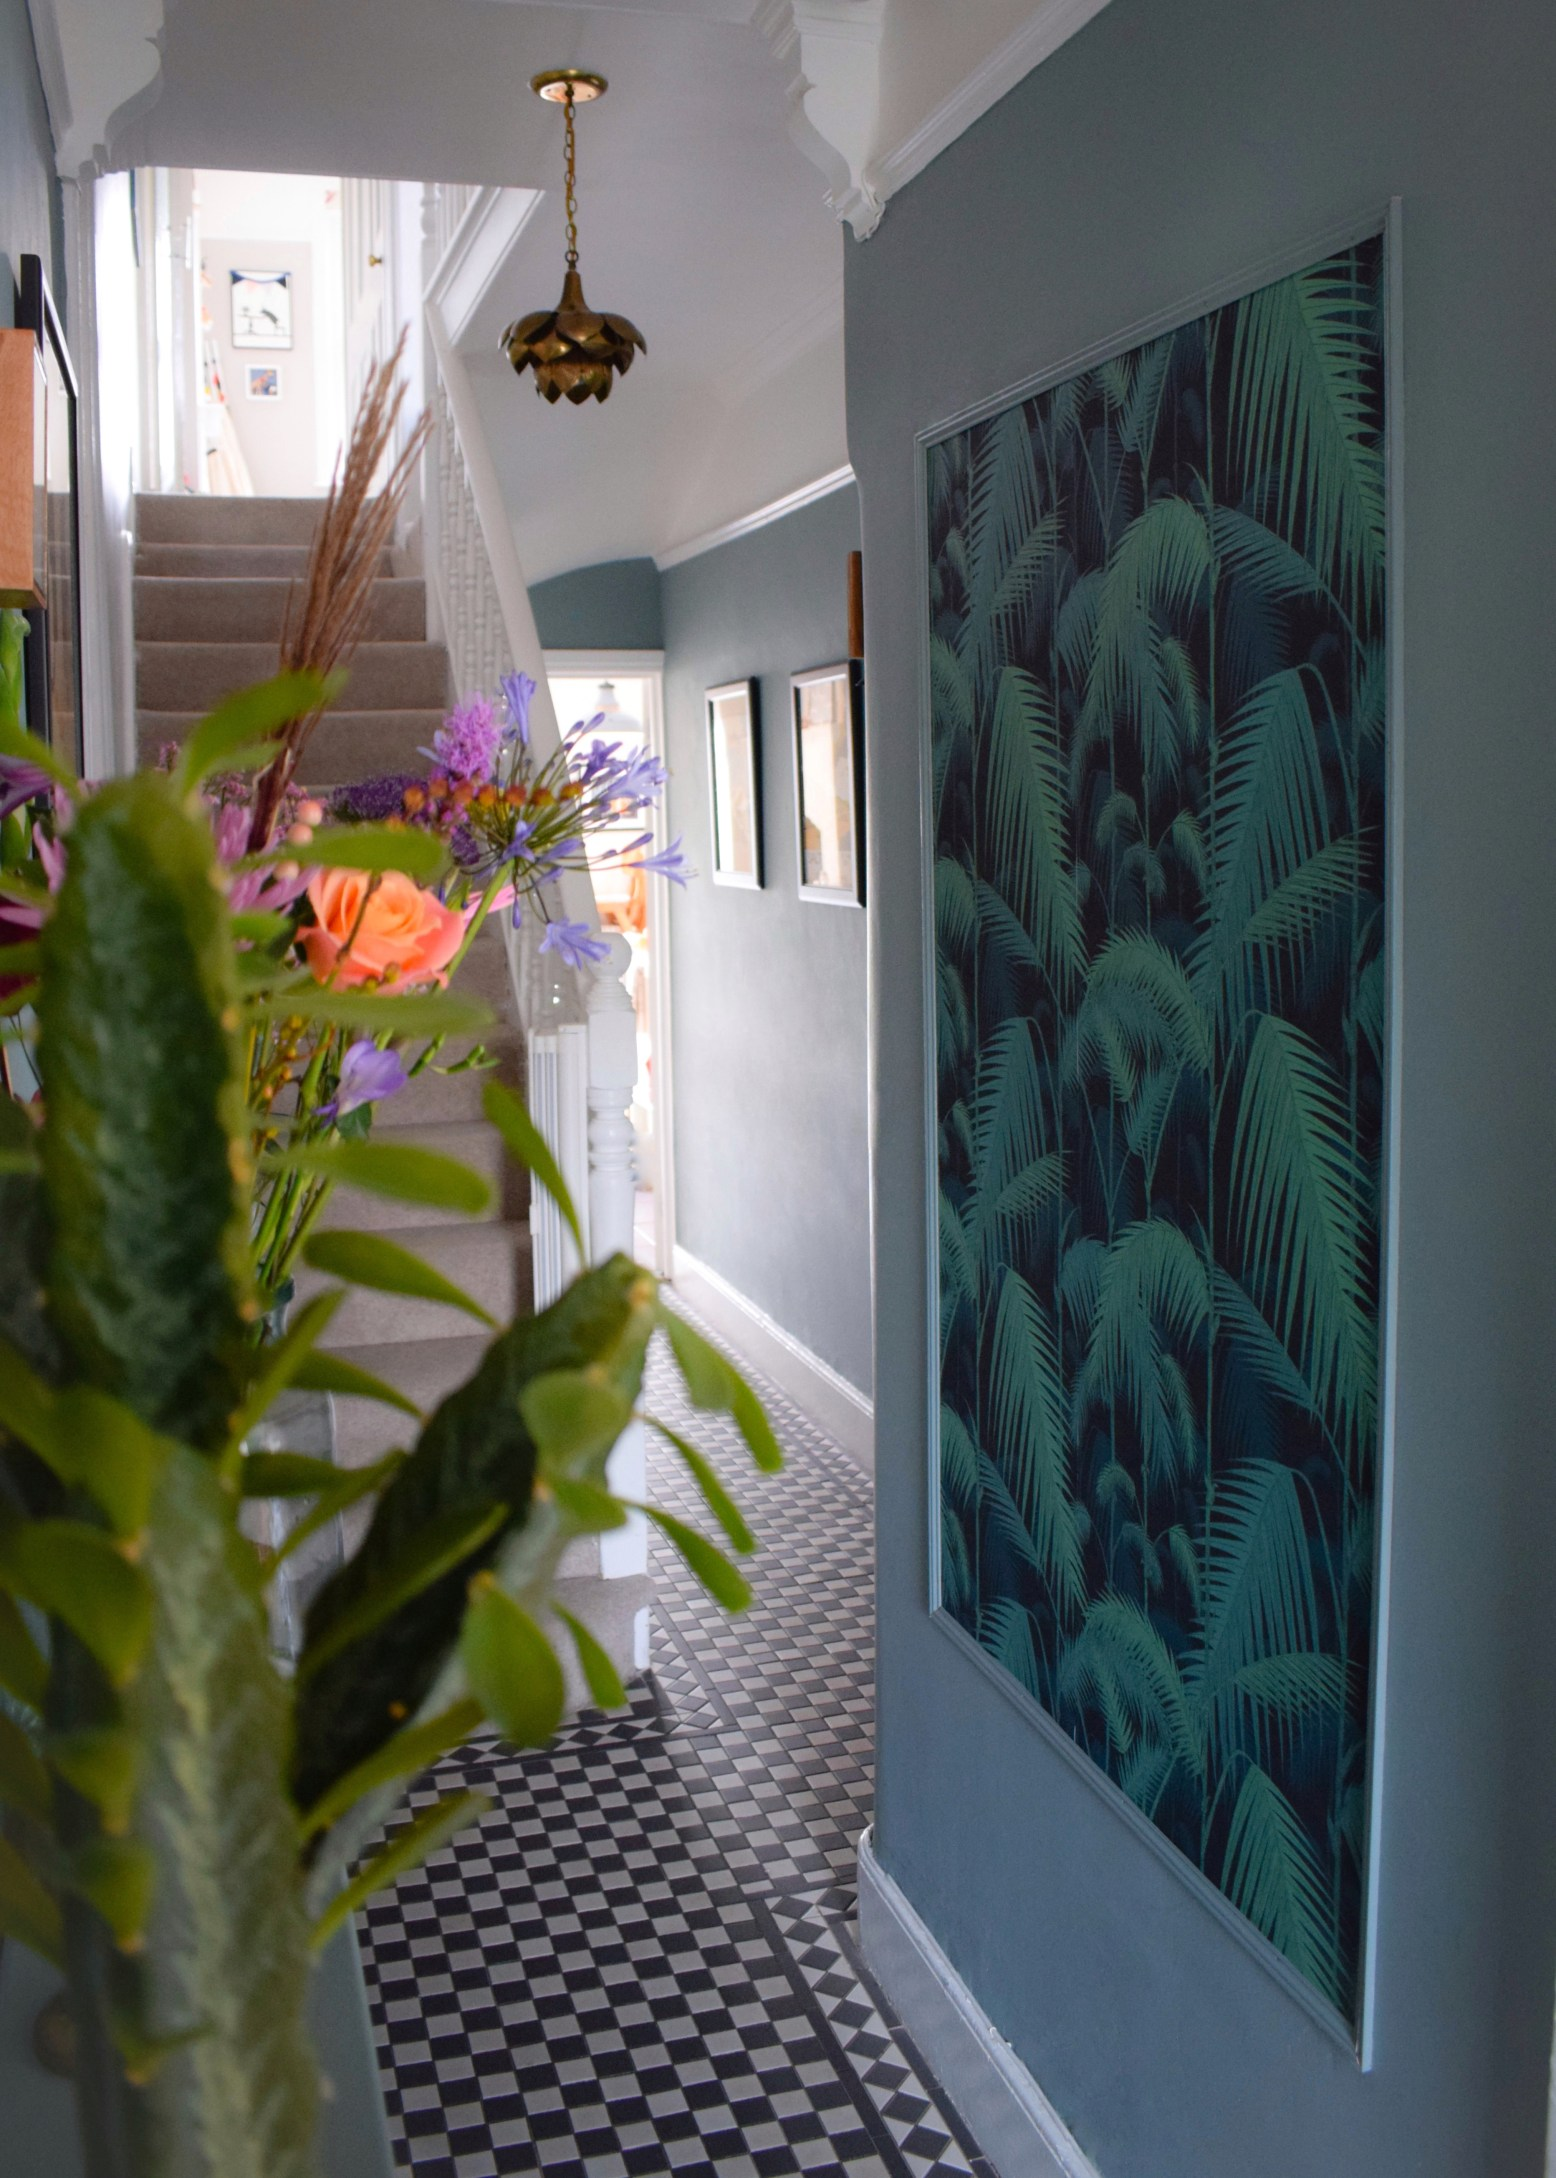 vintage-bohemian-eclectic-style-hallway-interiors-farrow-ball-oval-room-blue-cole-son-palm-print-wallpaper